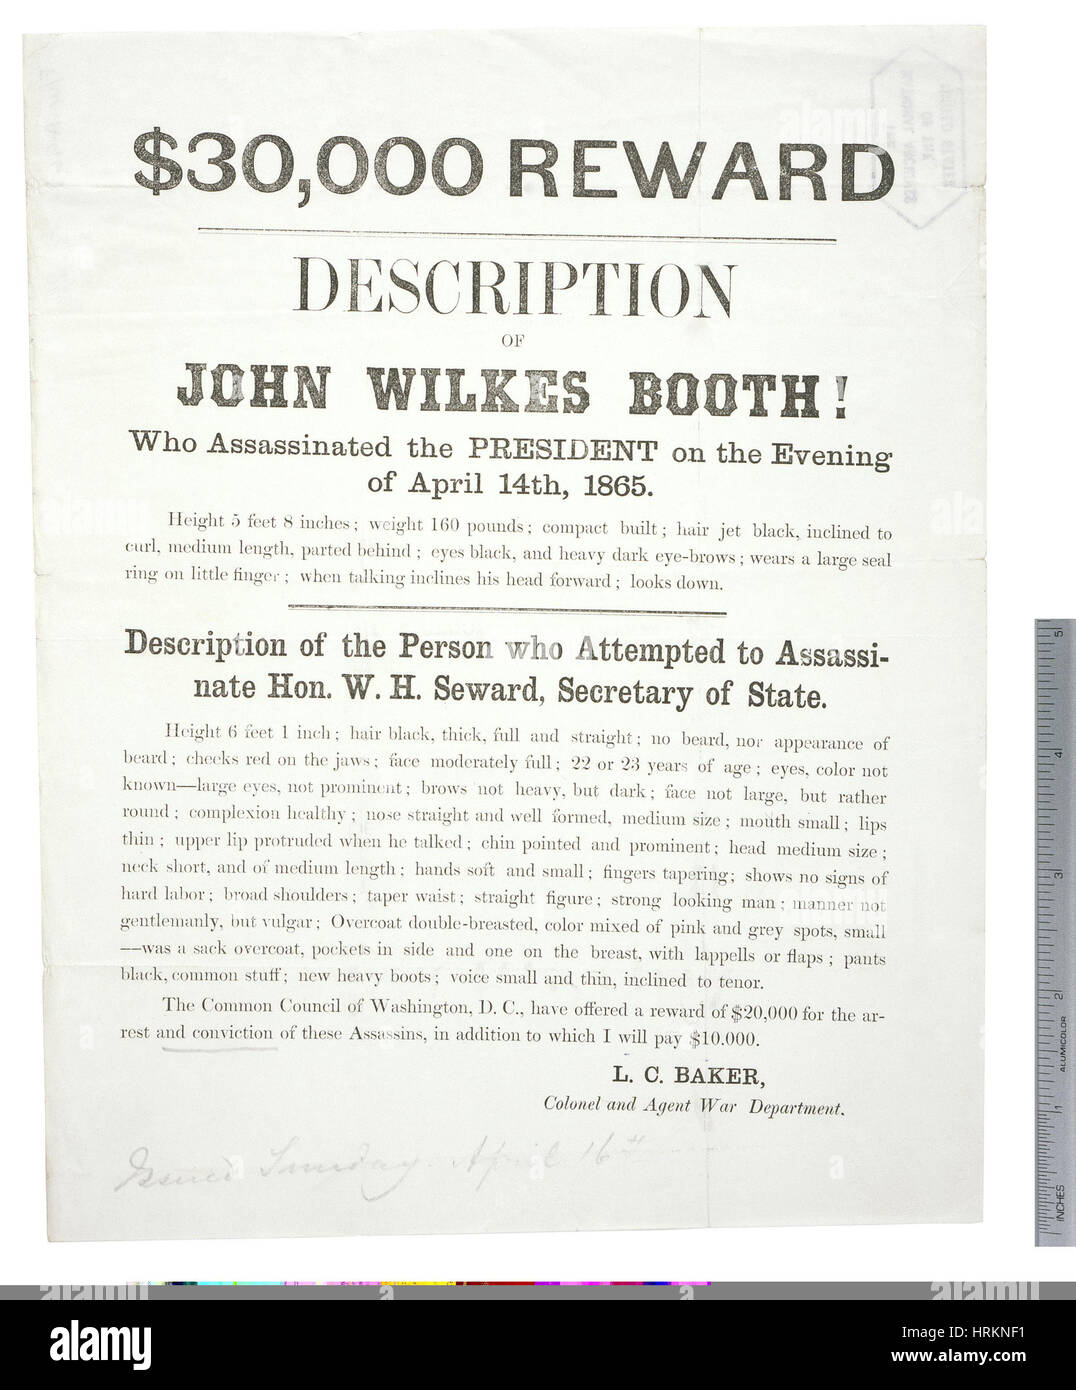 L'affiche de la Récompense pour John Wilkes Booth Photo Stock